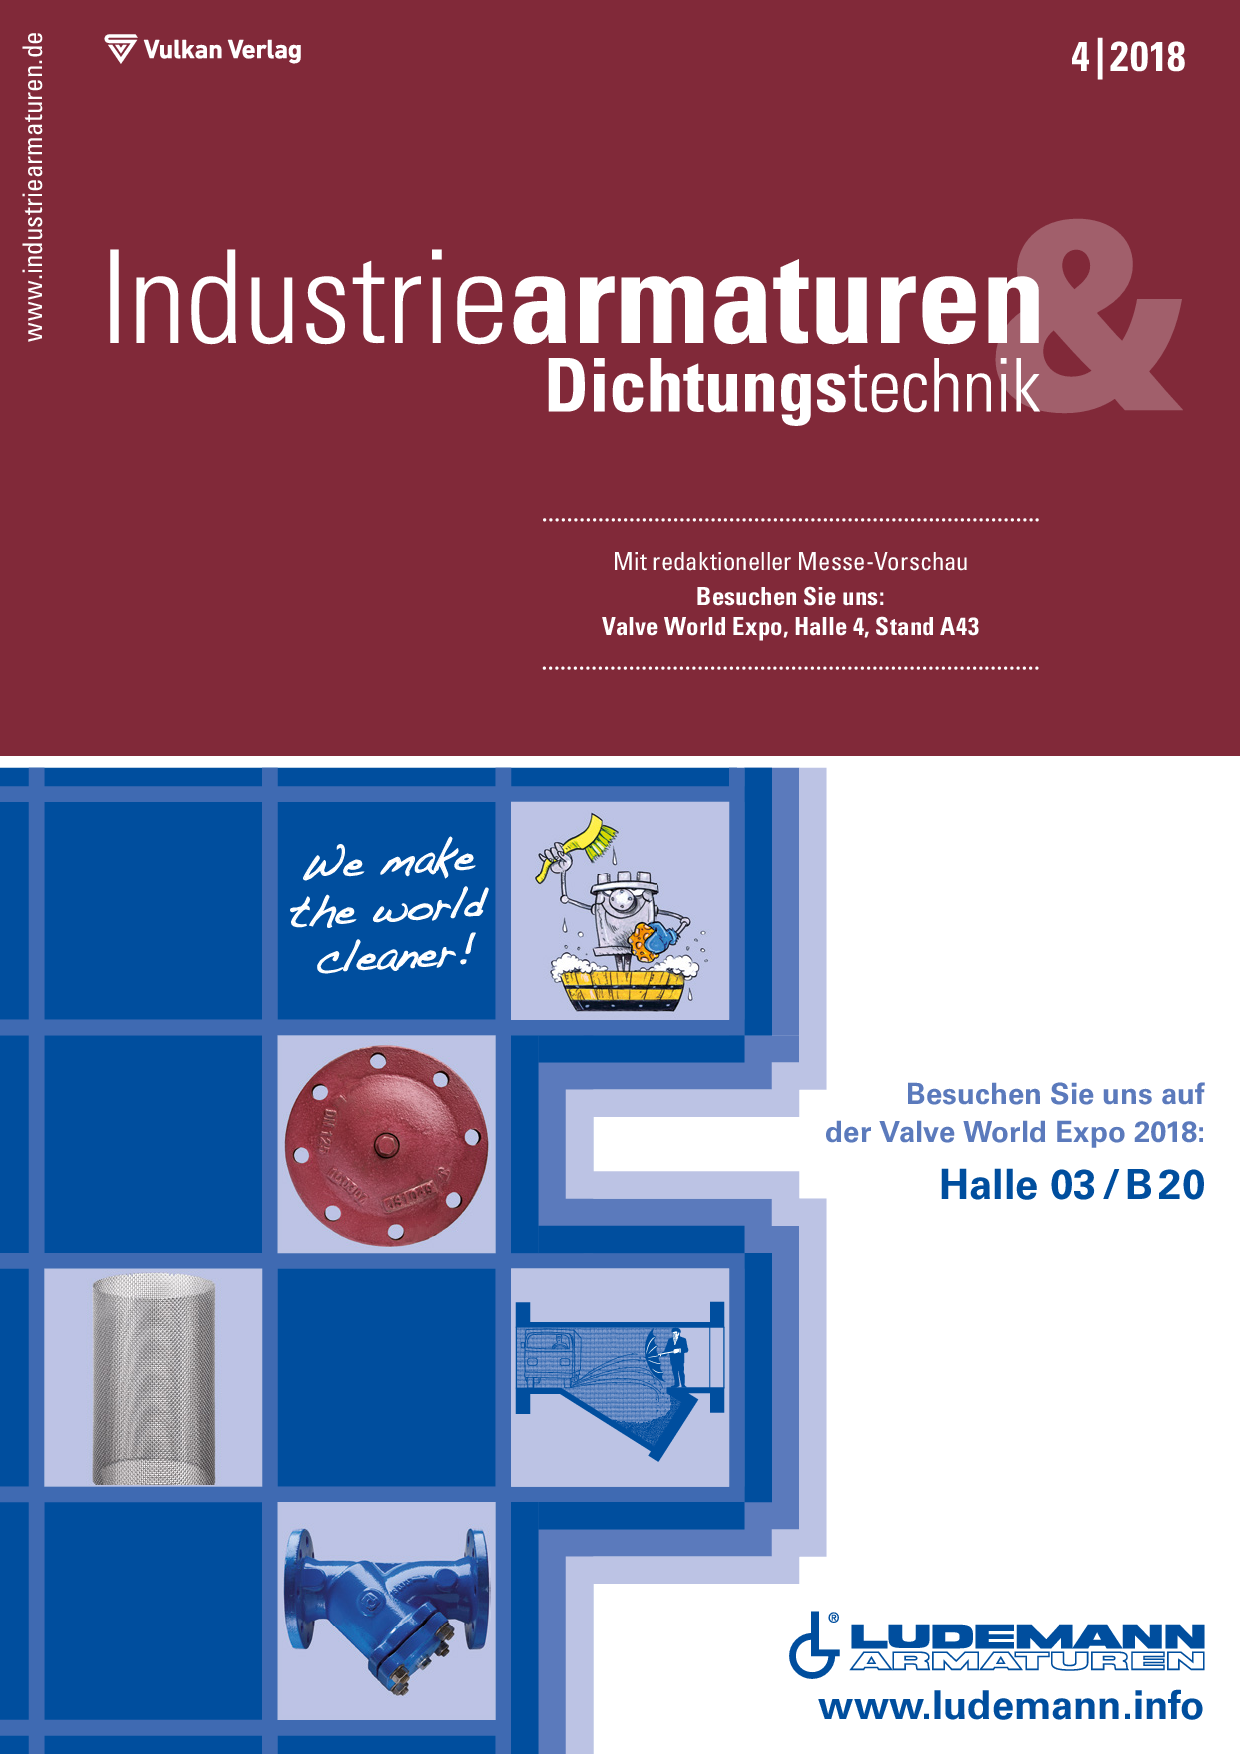 Industriearmaturen – 04 2018